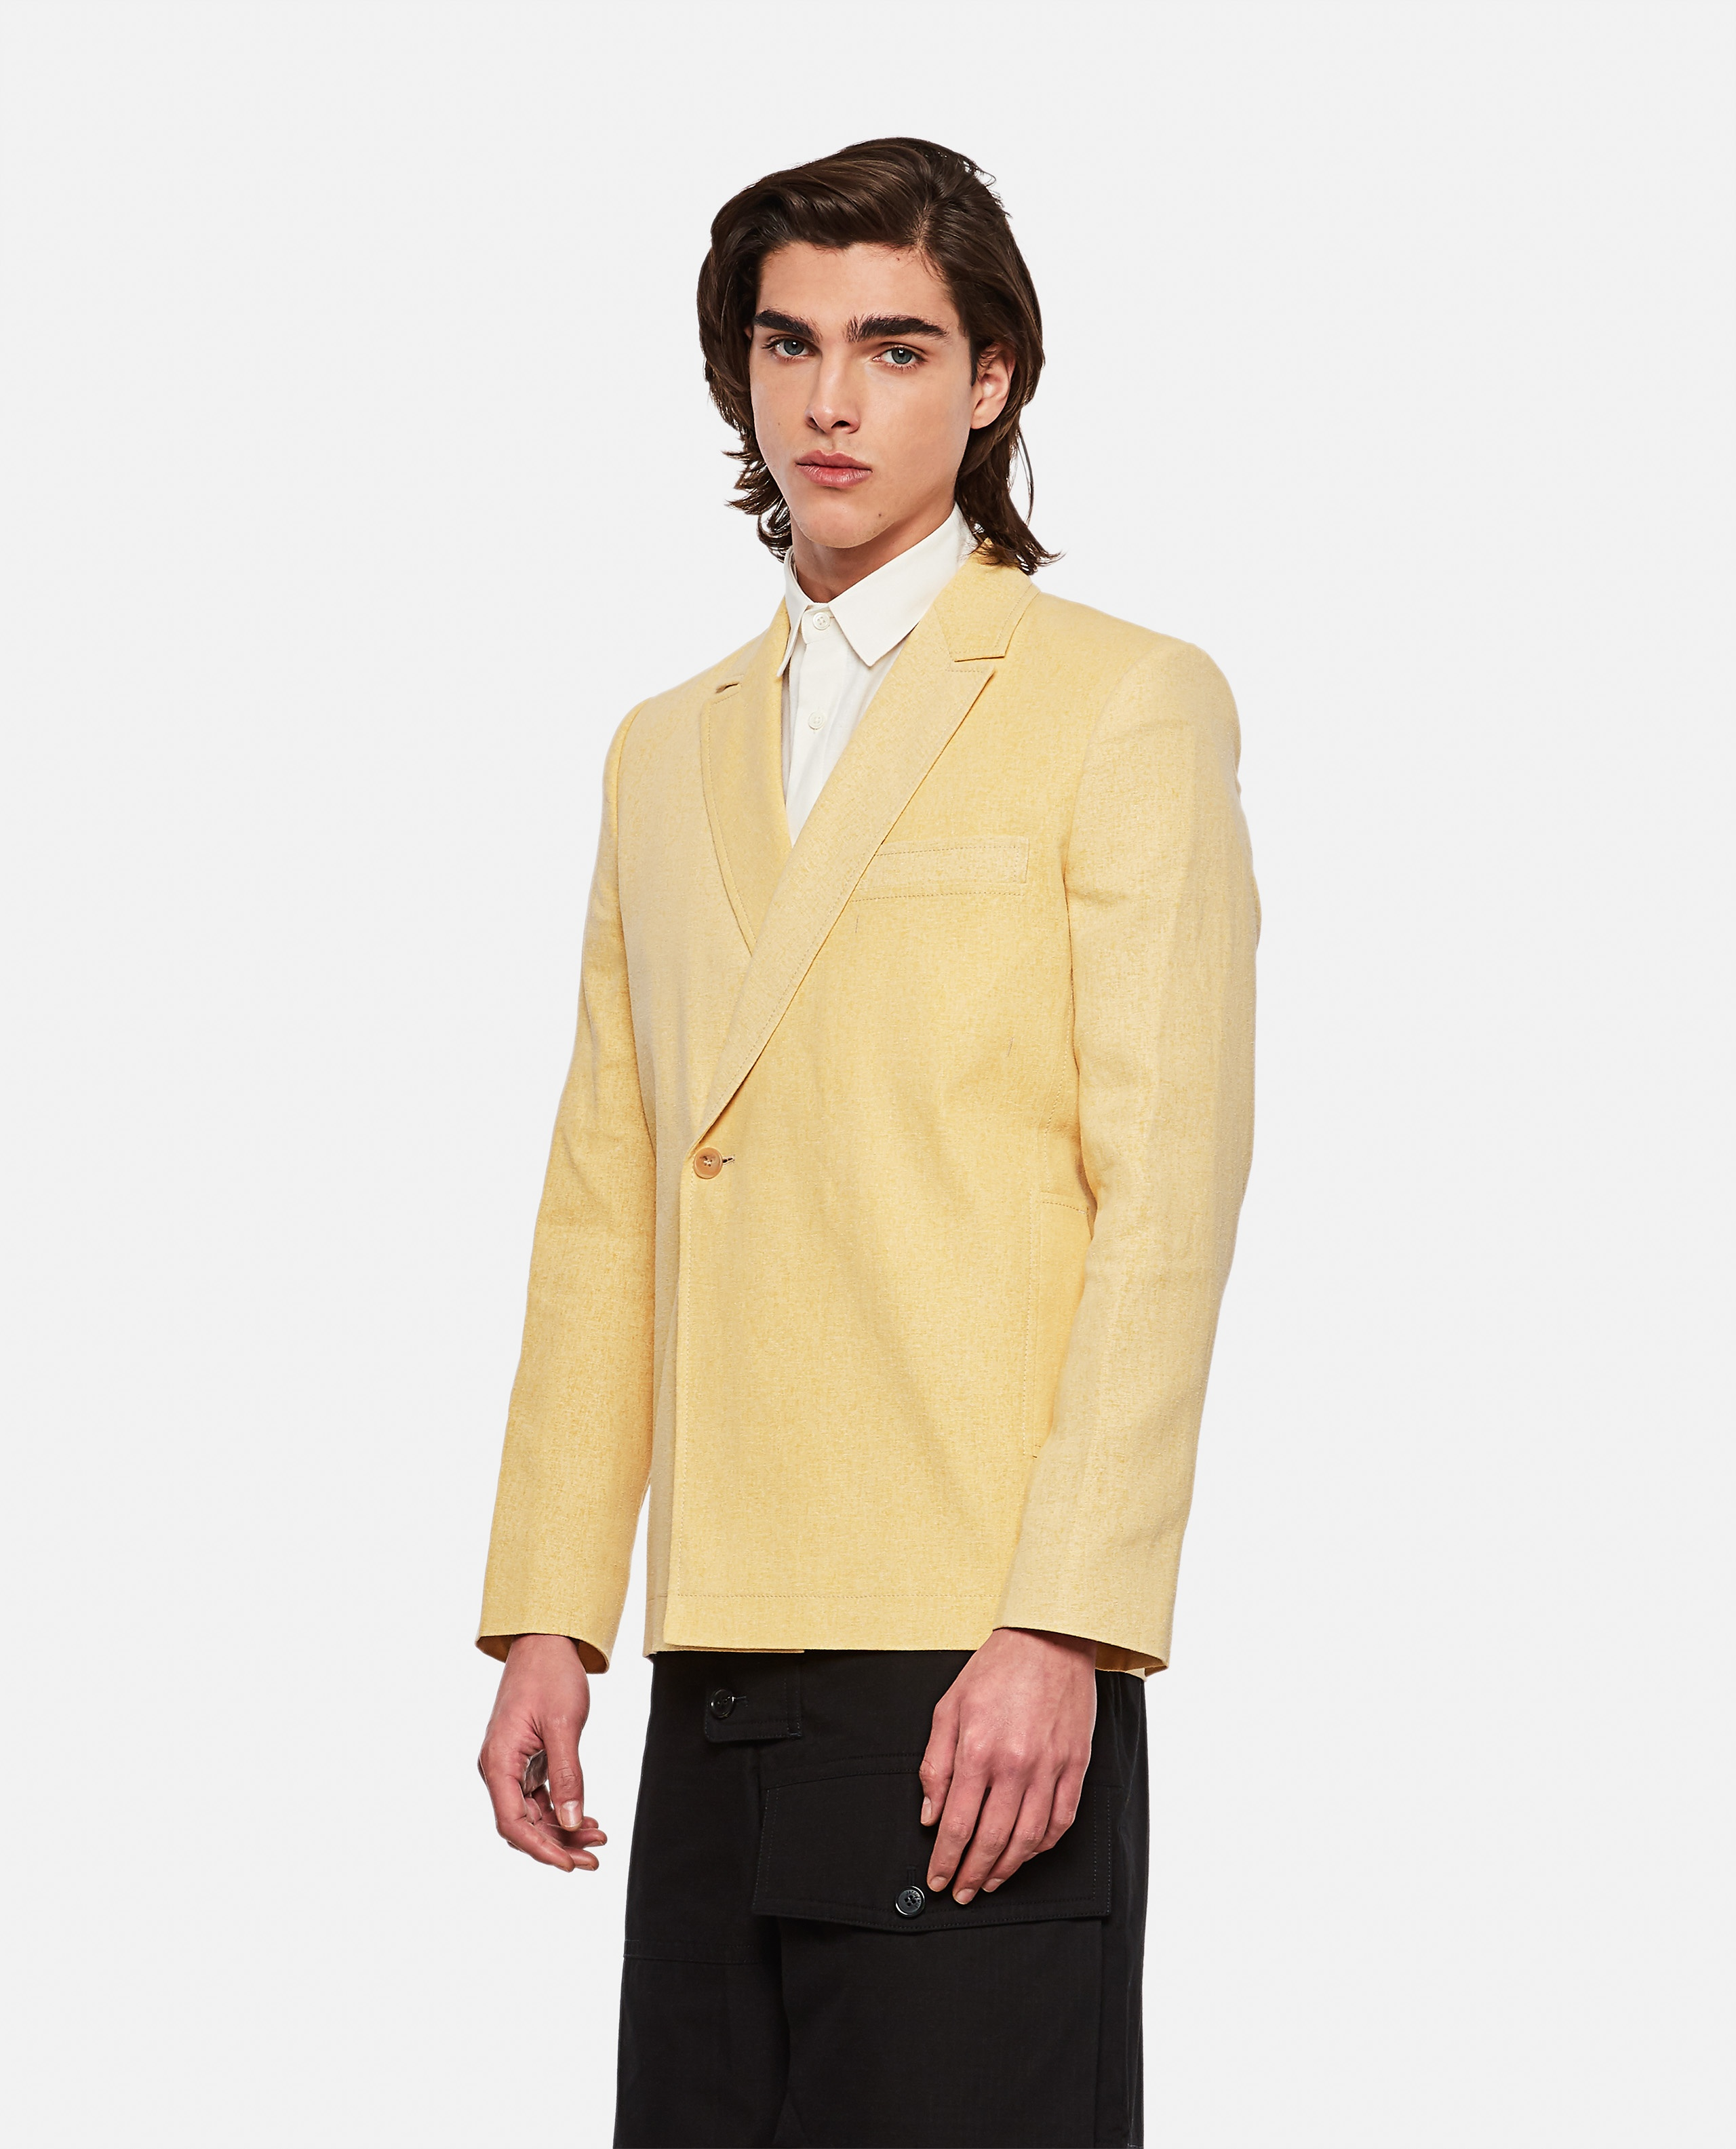 Linen blend jacket The Moulin dress Men Jacquemus 000293620043232 1